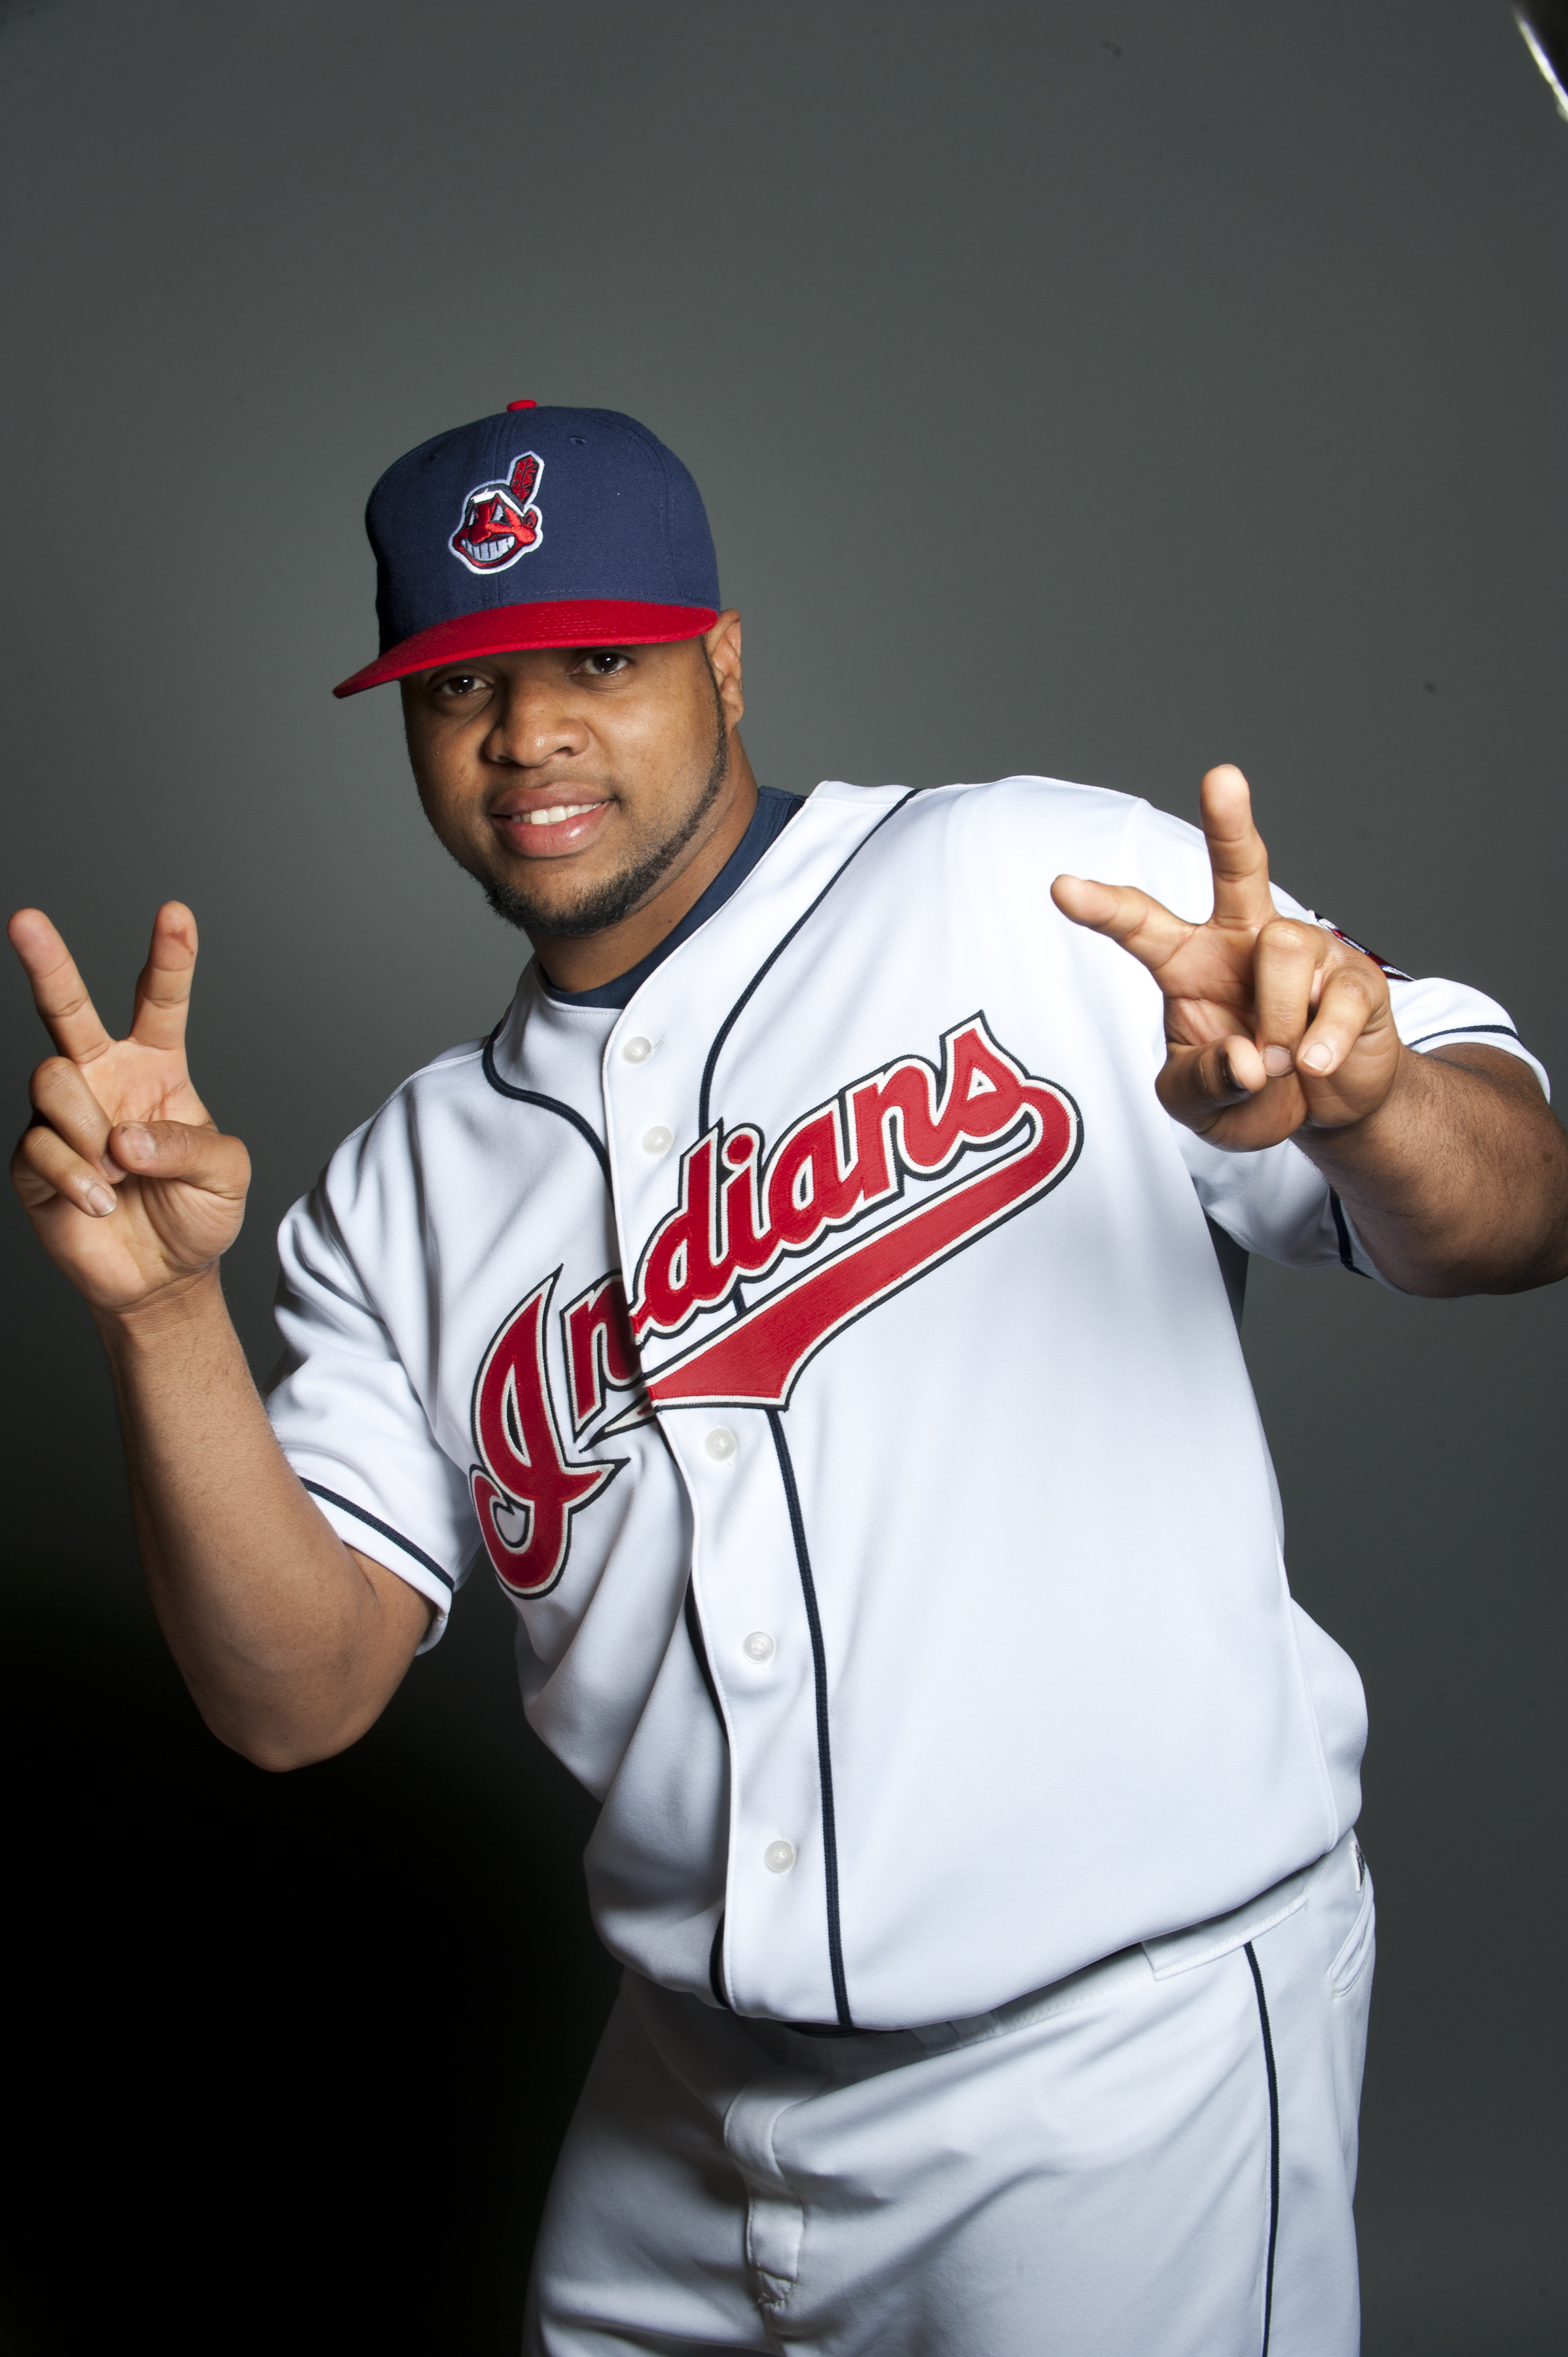 GOODYEAR, AZ - FEBRUARY 22: Carlos Santana #41of the Cleveland Indians poses during their photo day at the Cleveland Indians Spring Training Complex on February 22, 2011 in Goodyear, Arizona. (Photo by Rob Tringali/Getty Images)